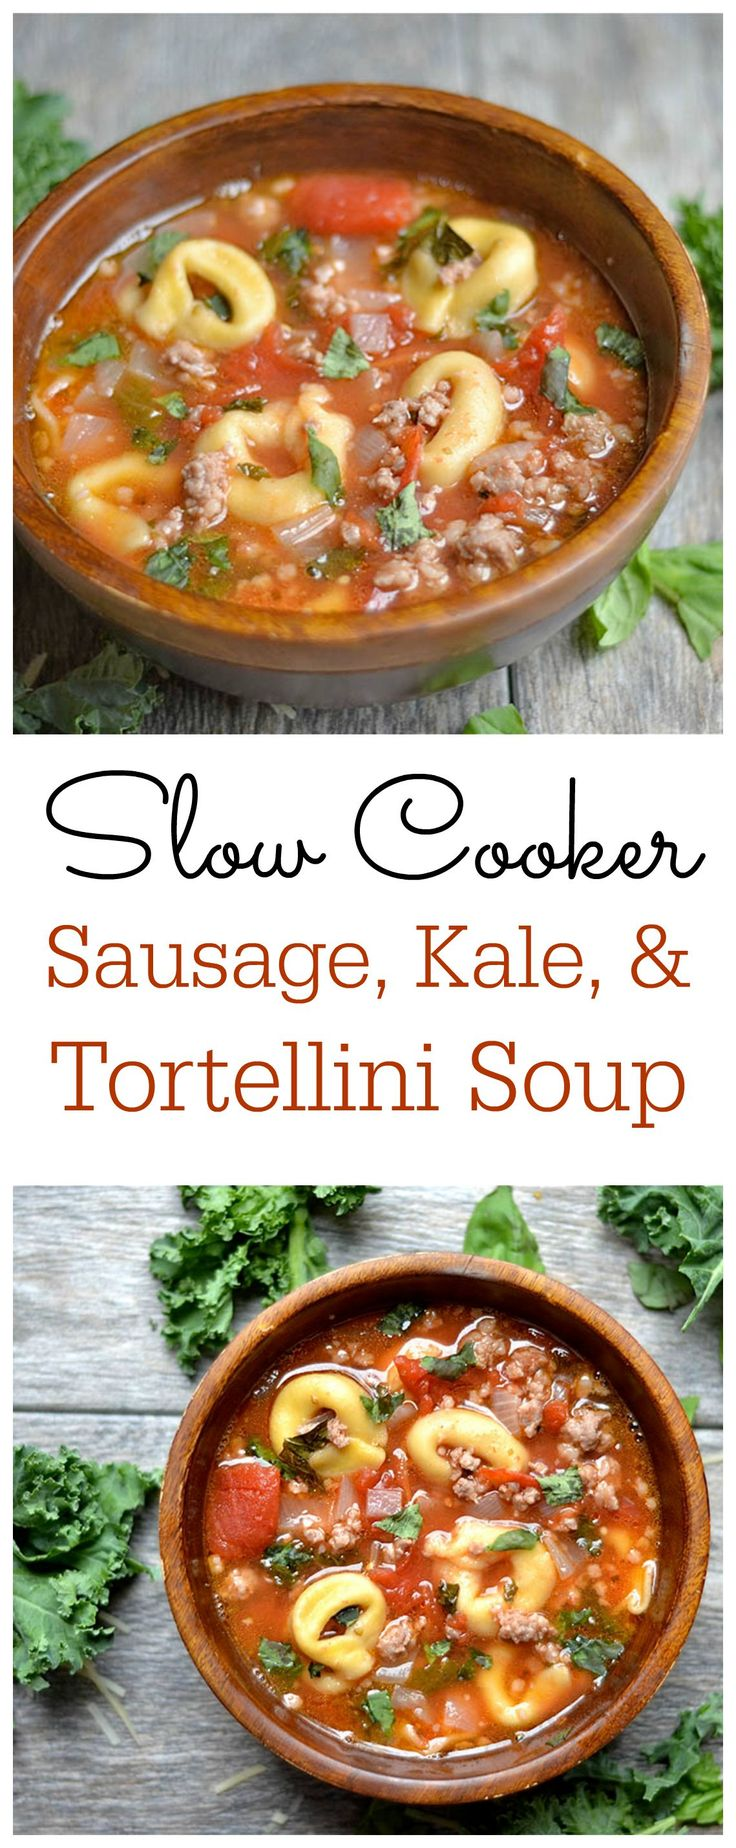 Easy, delicious soup prepared in your slow cooker! Gluten-Free and low carb option too.